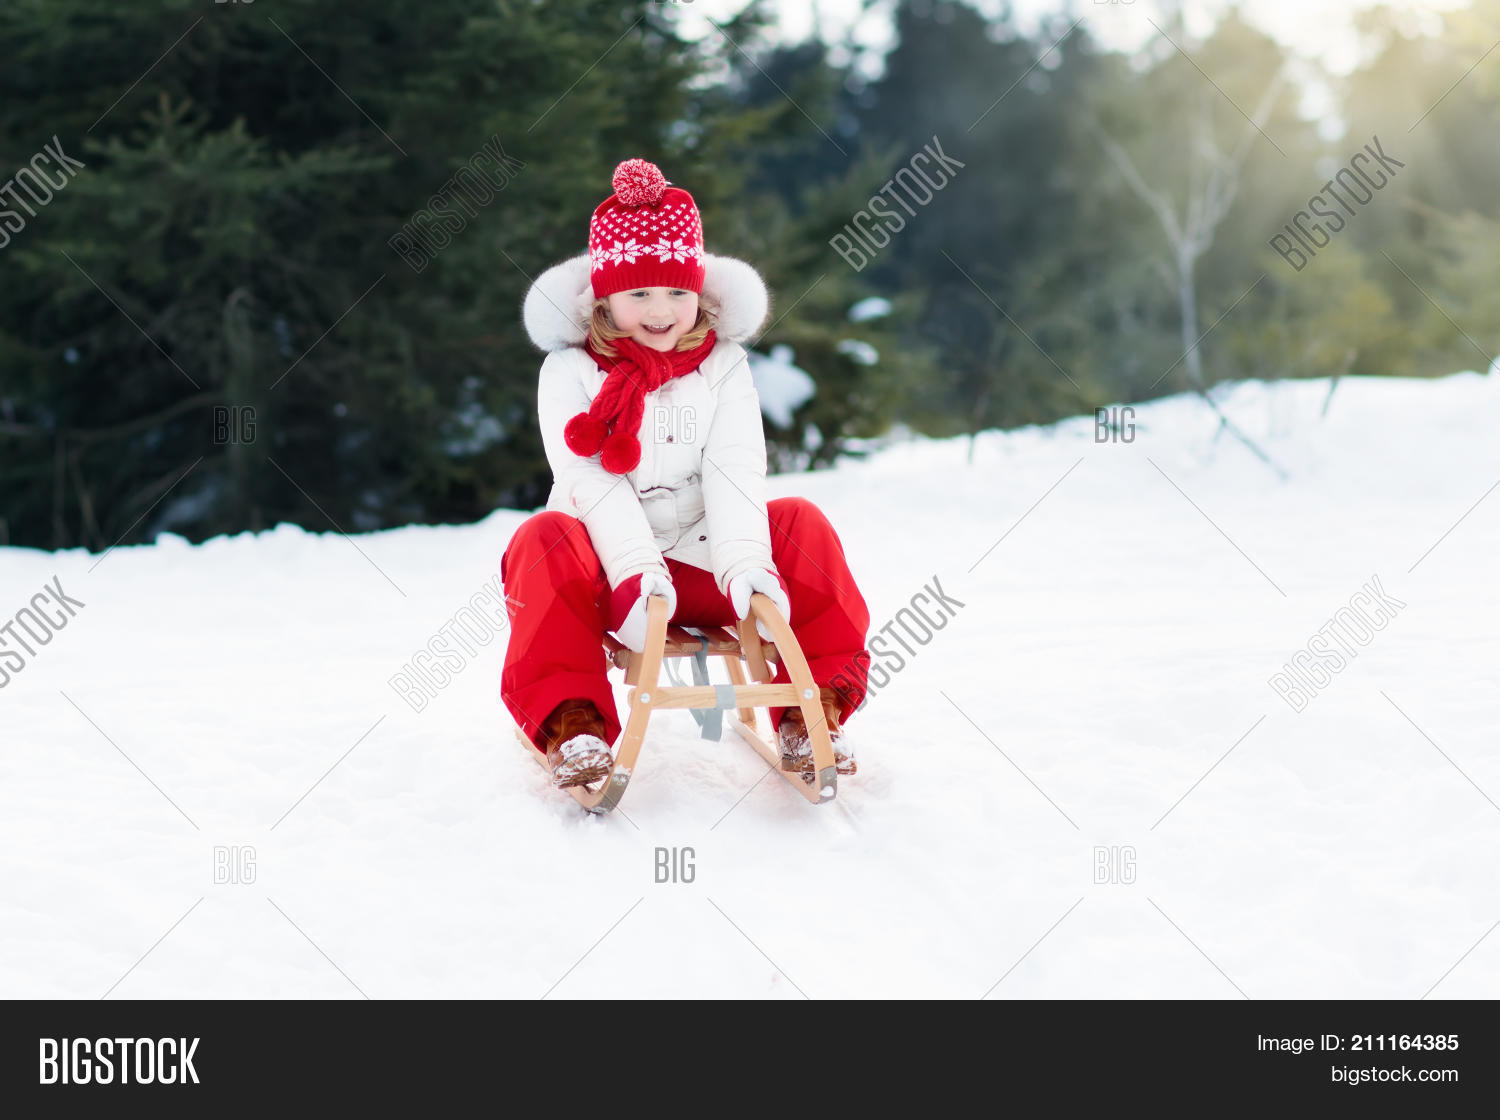 529ed41f74 Toddler kid riding a sledge. Children play outdoors in snow. Kids sled in  the Alps mountains in winter. Outdoor fun for family Christmas vacation.